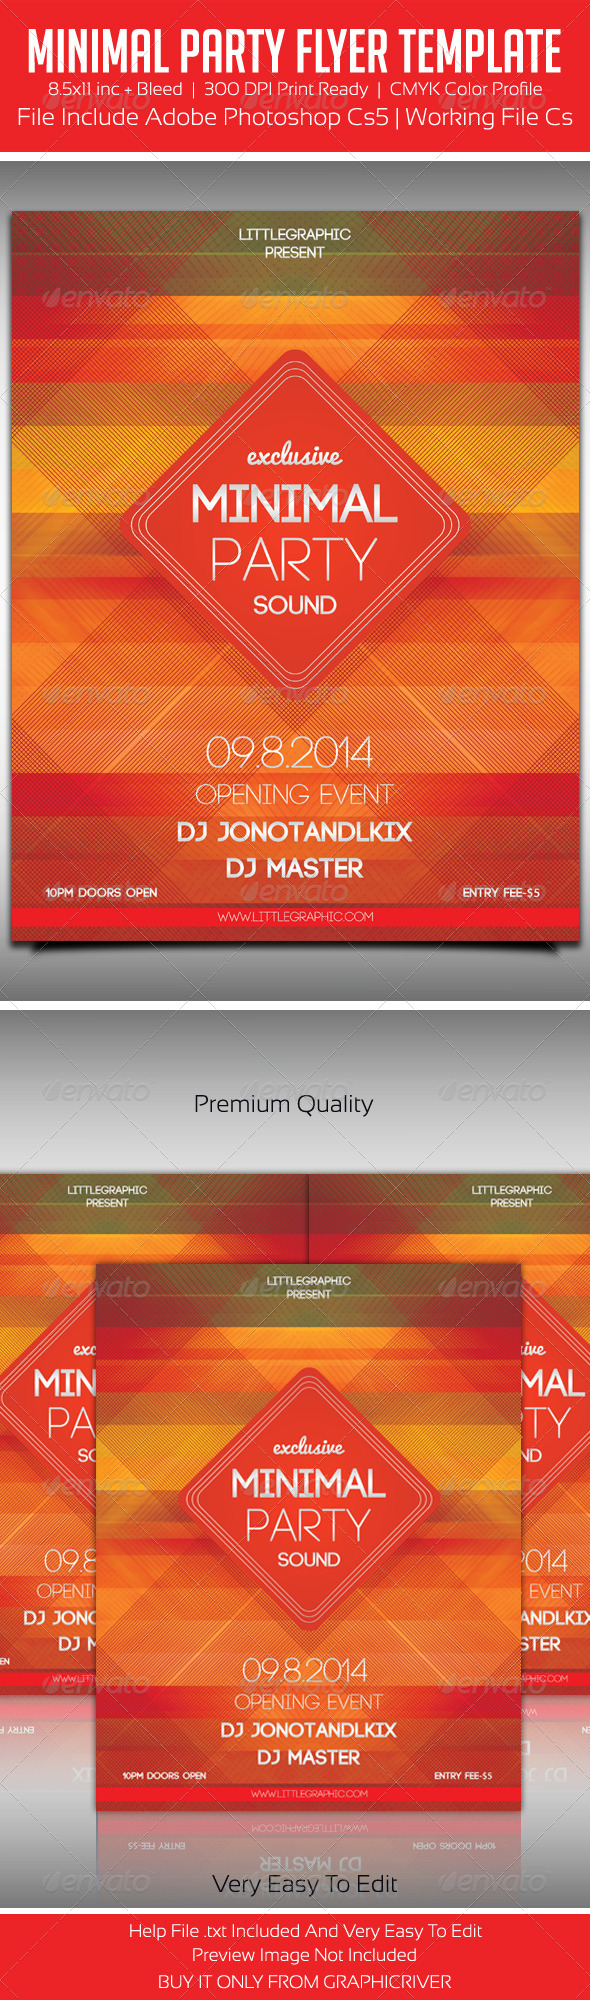 Minimal Party Flyer 2 - Print Templates